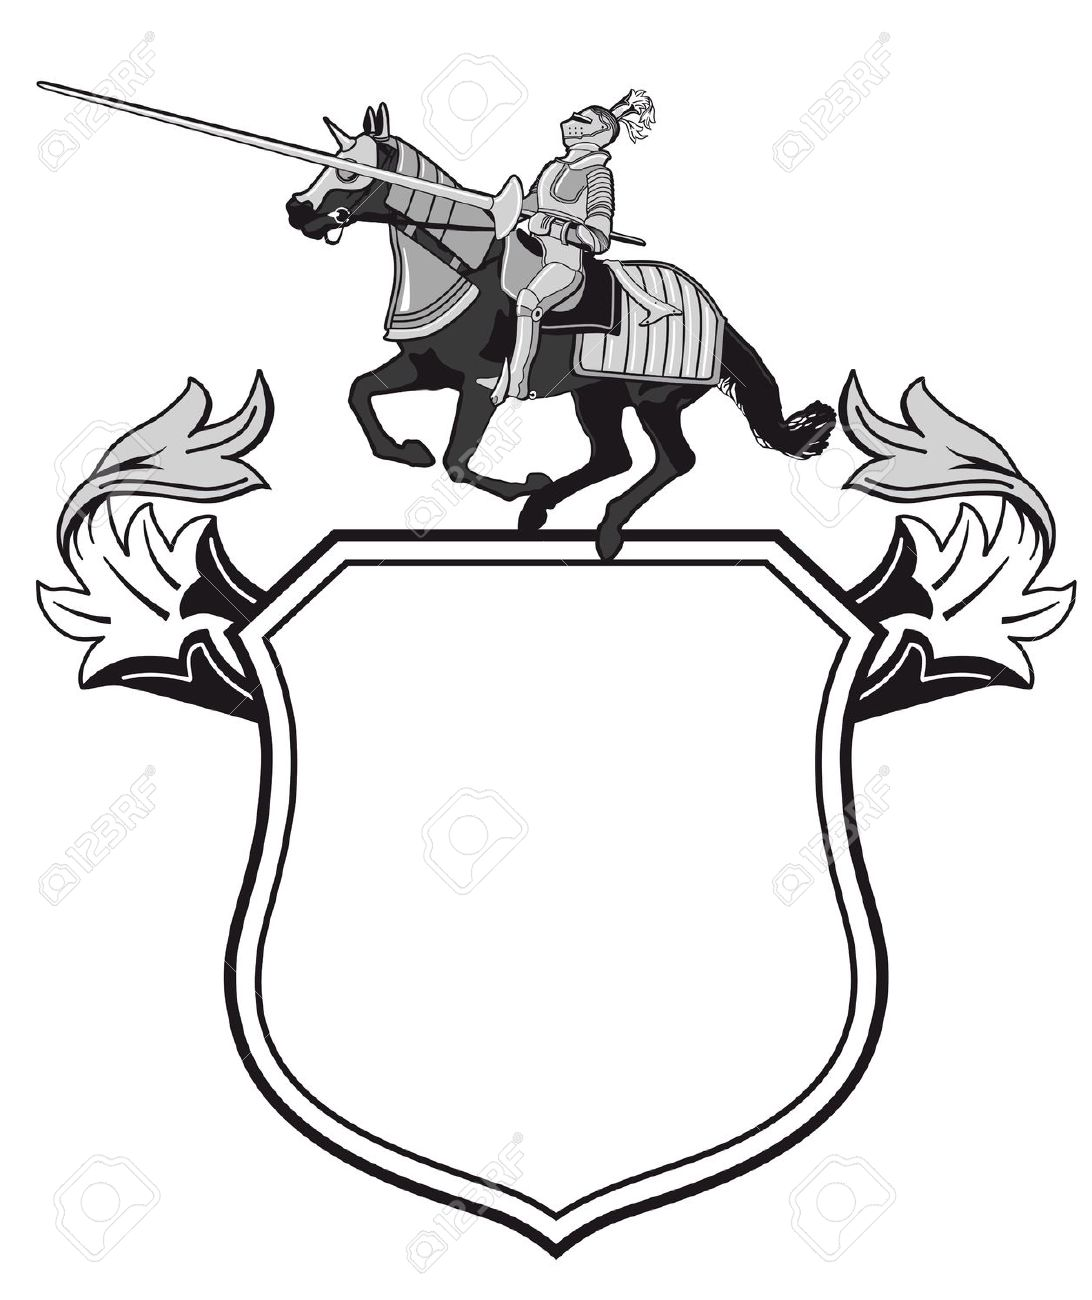 Knights Tournament Crest Royalty Free Cliparts, Vectors, And Stock.